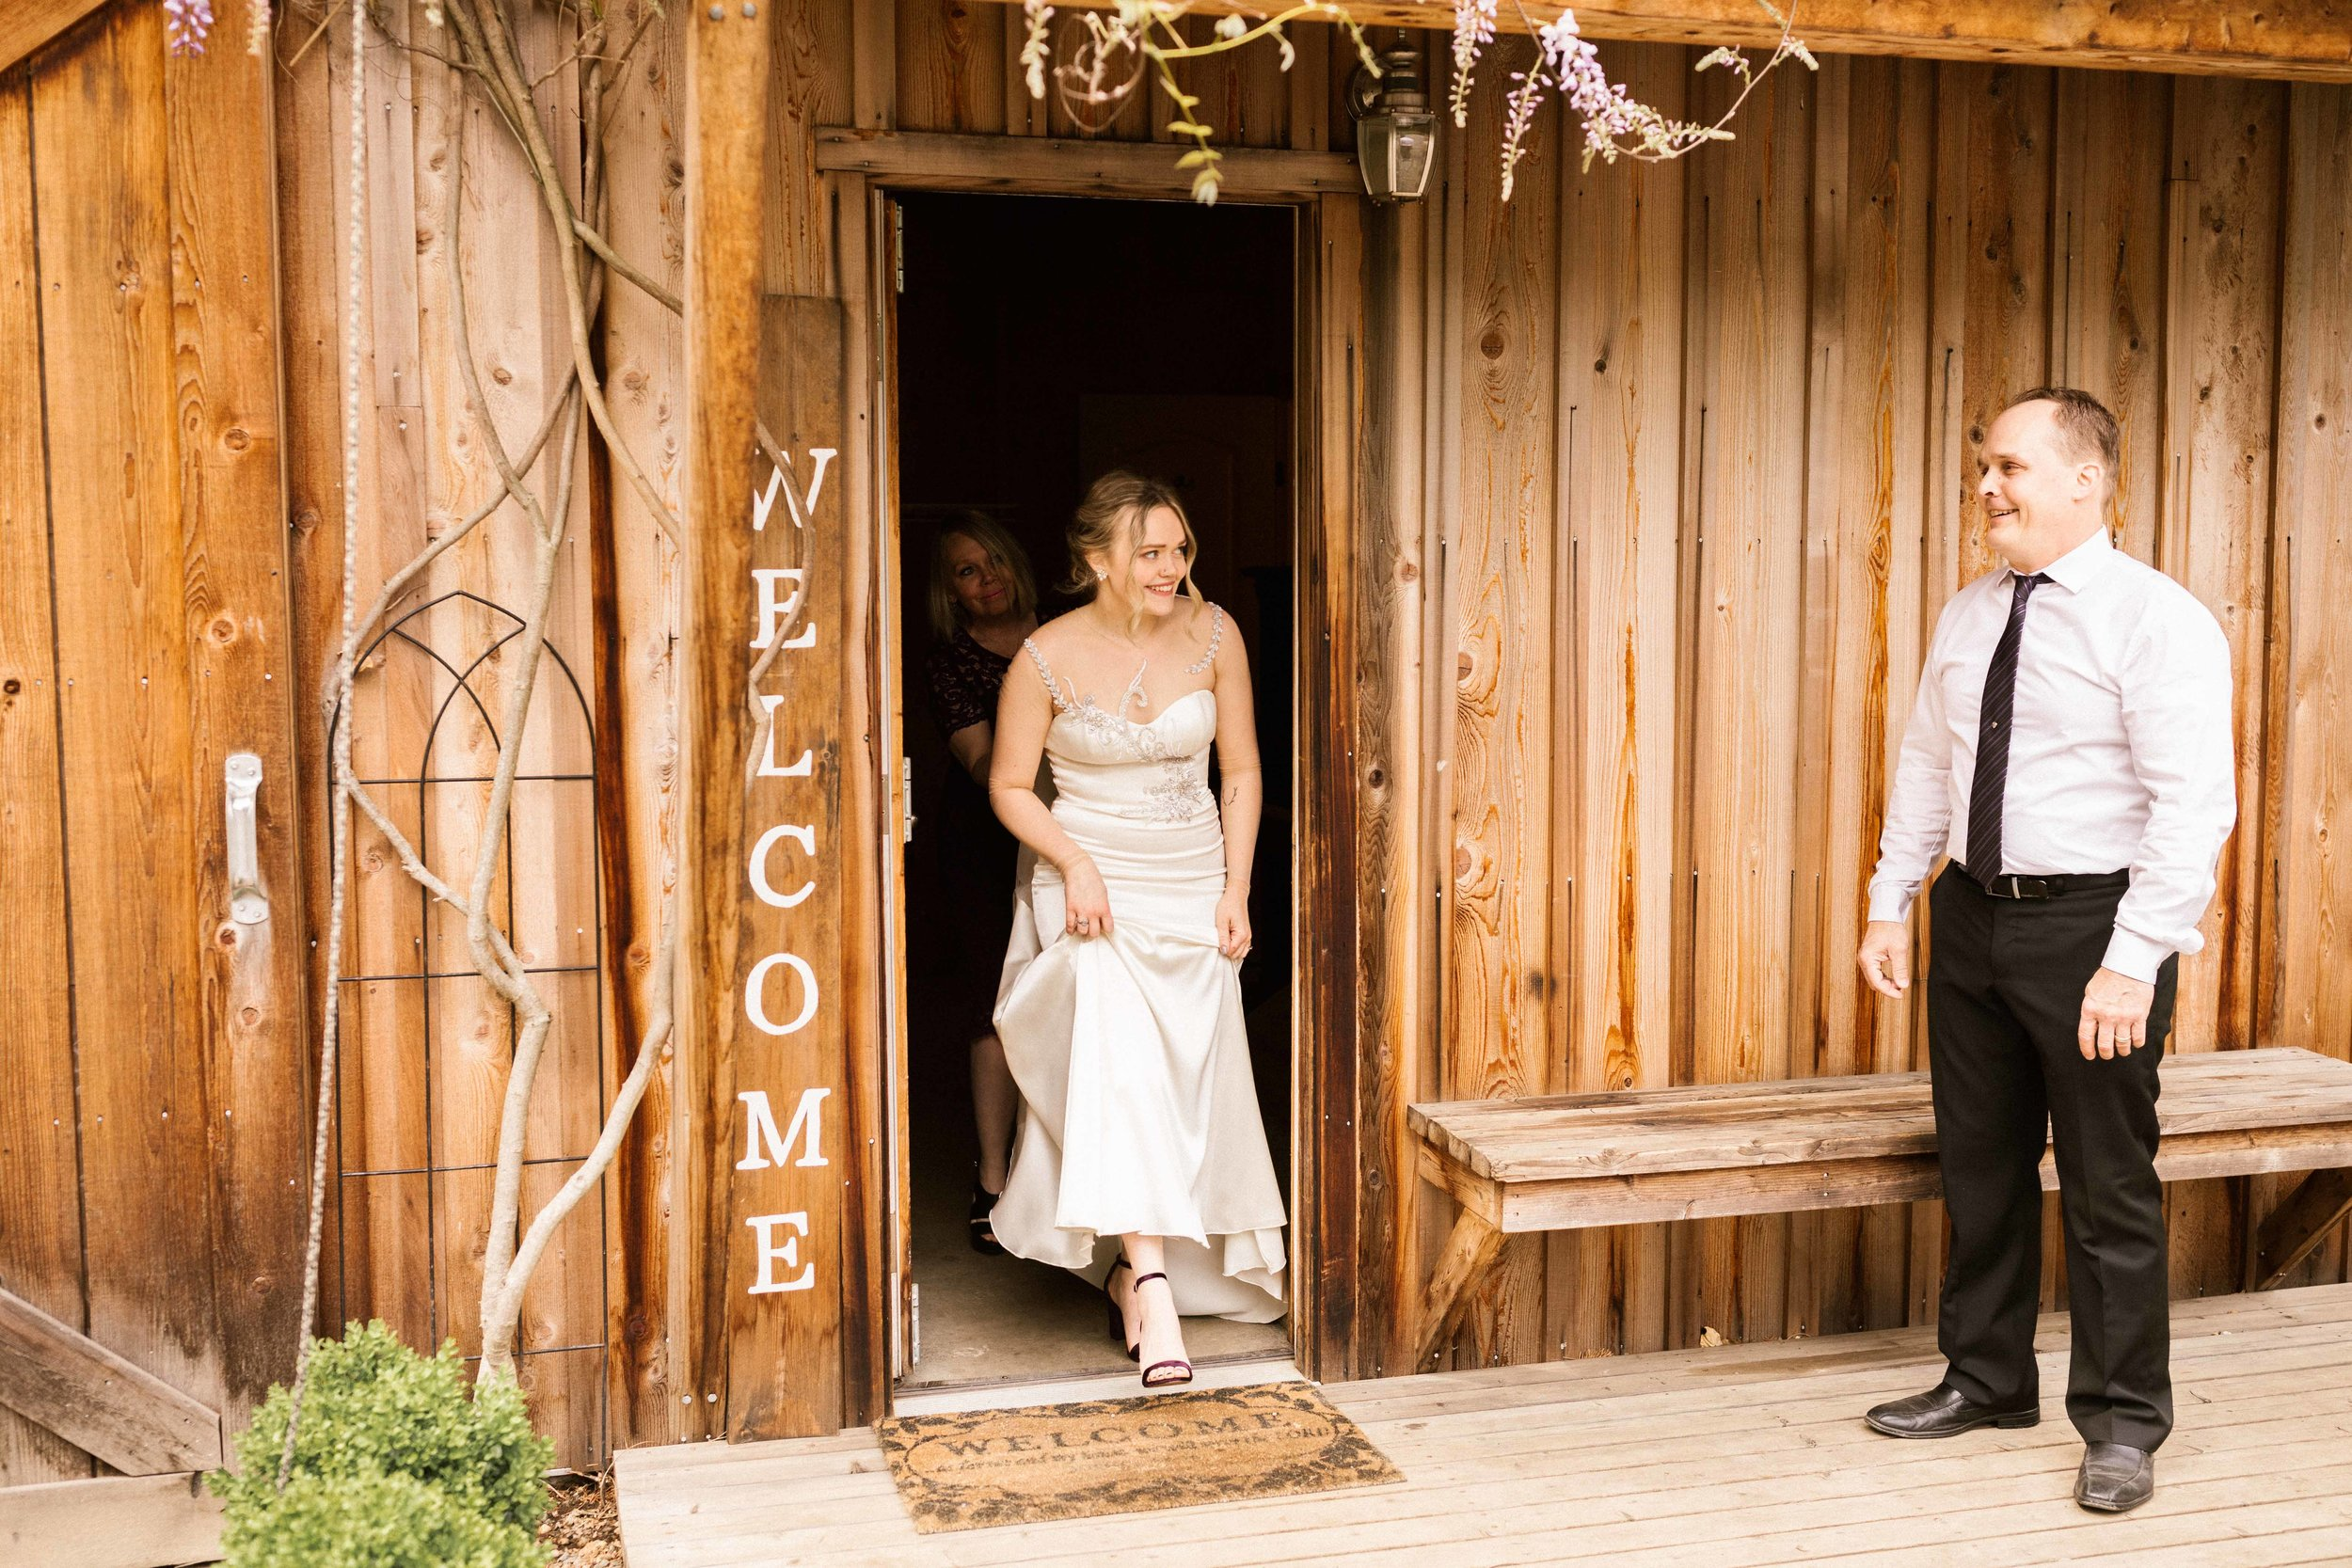 everson-barn-wedding-28.jpg